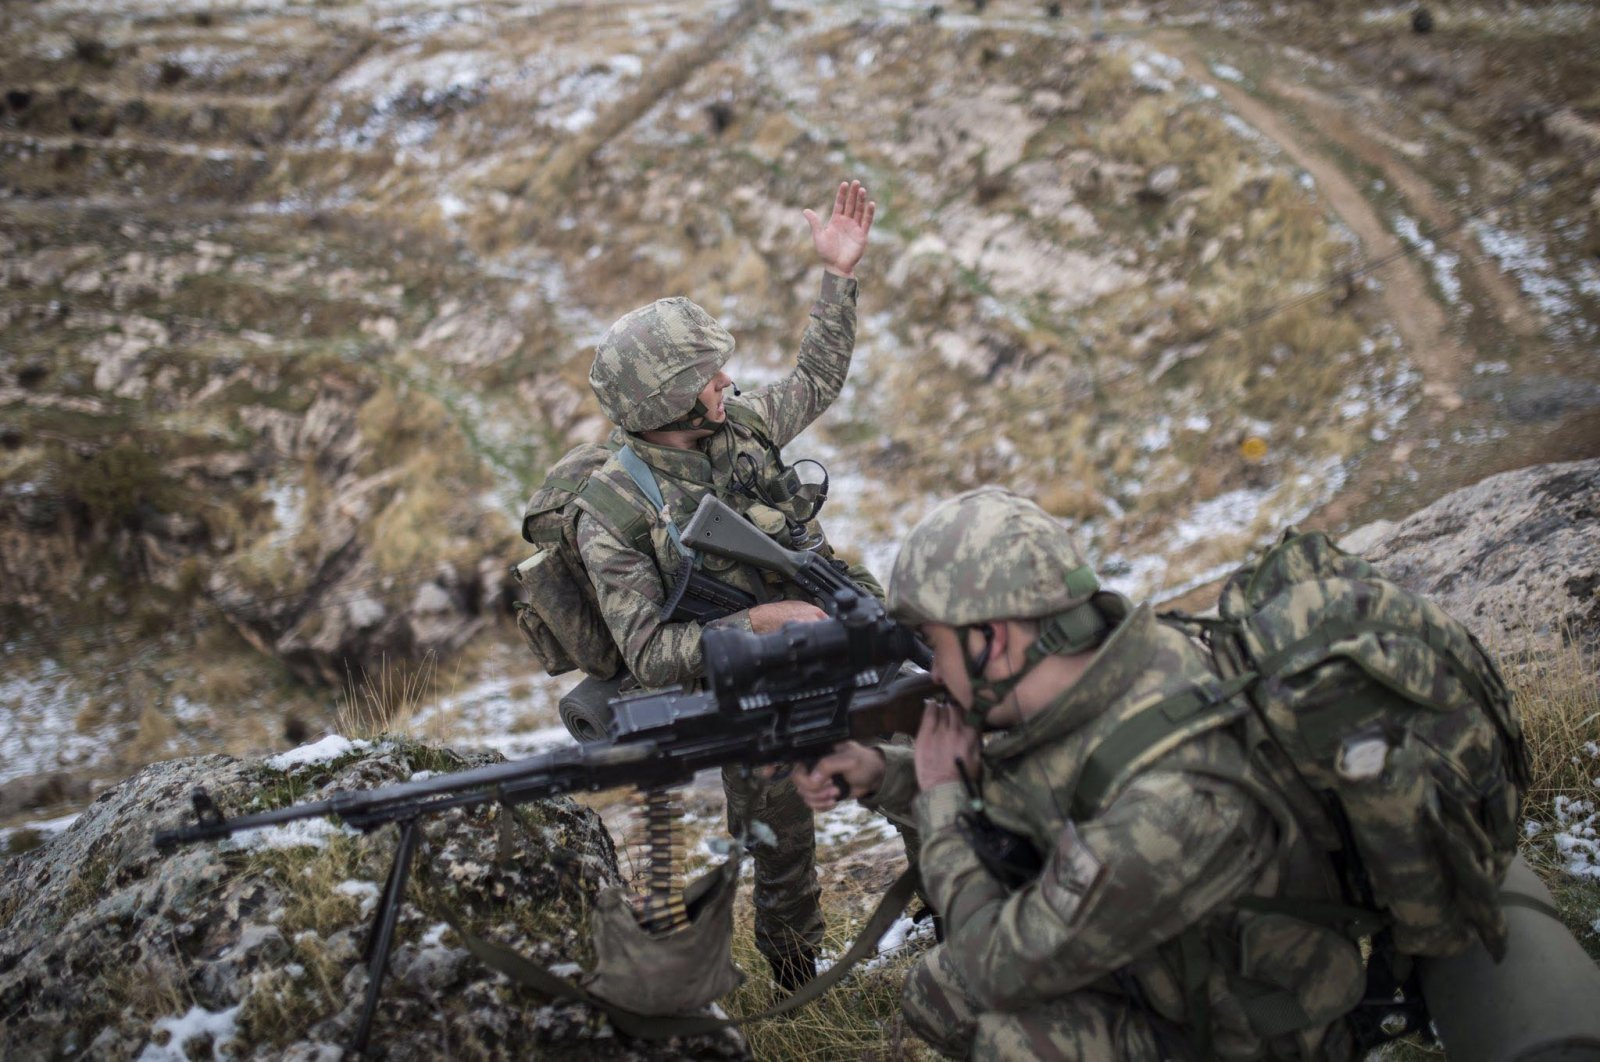 Turkish soldiers participate in an anti-terror operation in northern Iraq (DHA File Photo)